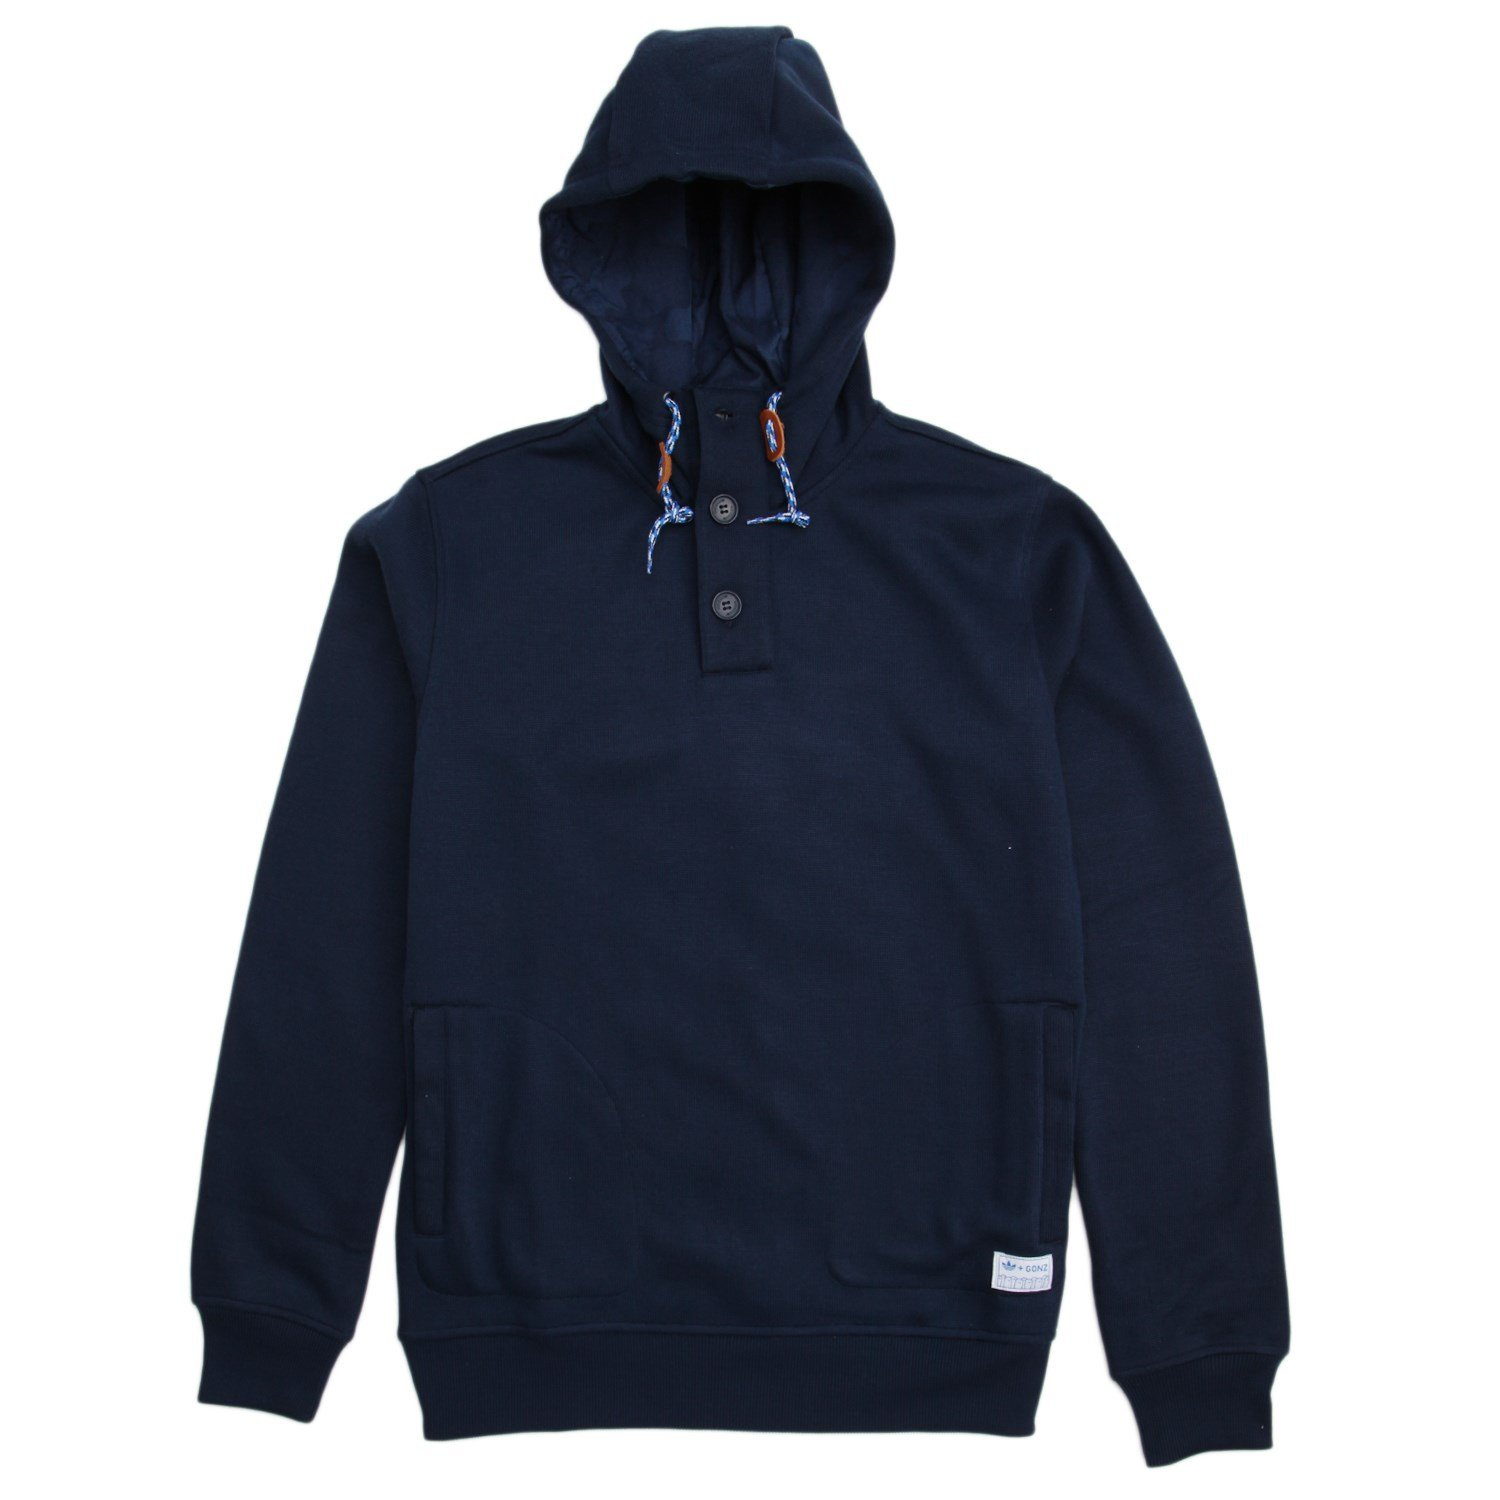 Adidas Gonz Pullover Hoodie | evo outlet